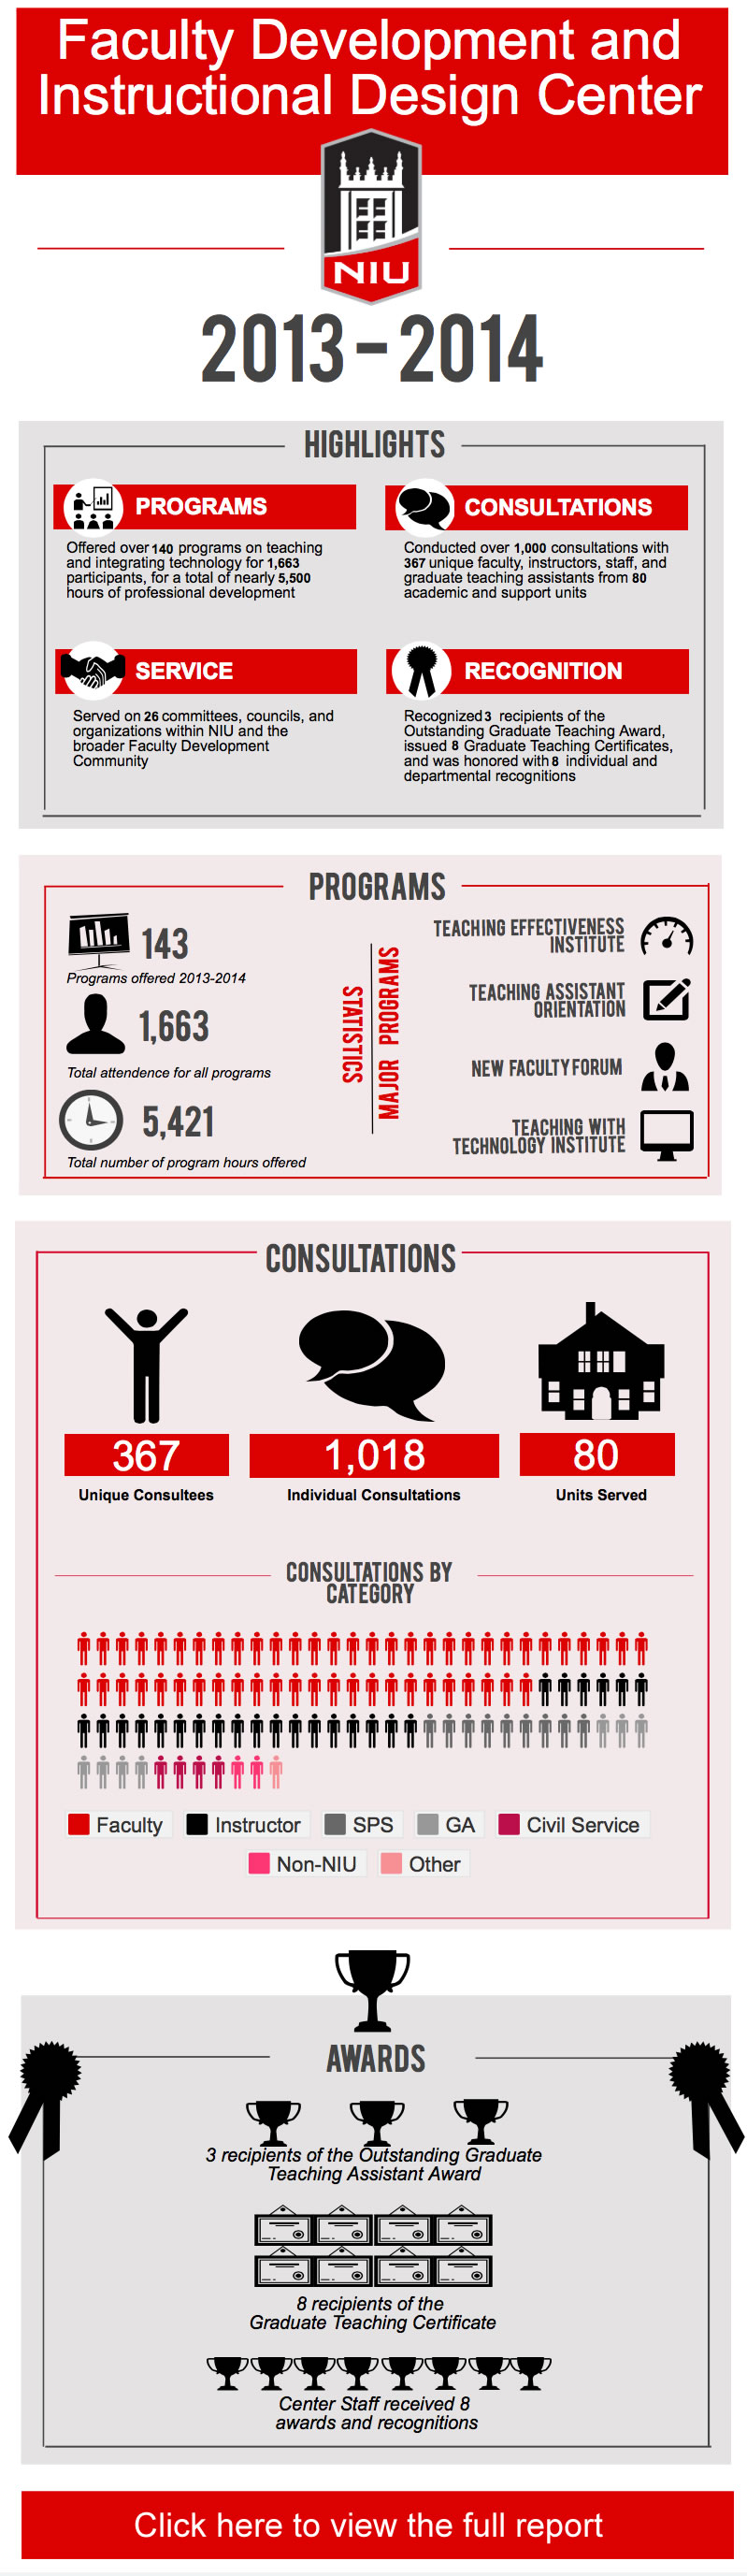 2013-2014 Annual Report Infographic